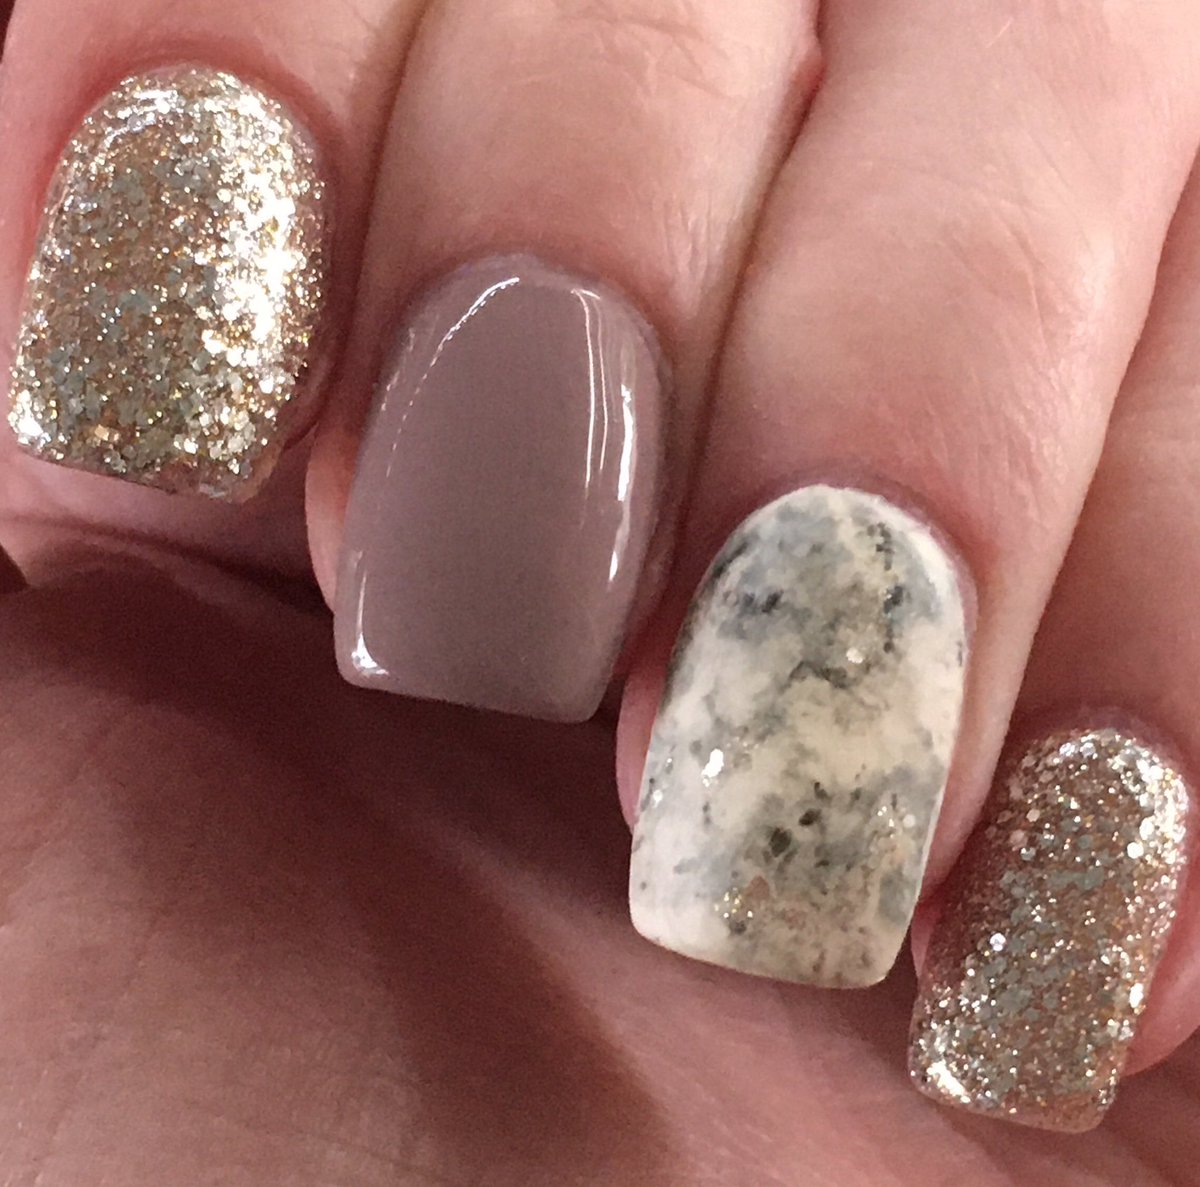 I was so inspired by @JeffreeStar and his #crematedcollection video yesterday that I just had to do a mani!! Do you think these would be #JeffreeStarApproved? #jeffreestar #JeffreeStarCosmetics #CREMATED #crematedpalette #marbleislife #shortnails  #nails #obsessed #deceasedpic.twitter.com/GlZUaBzeoX